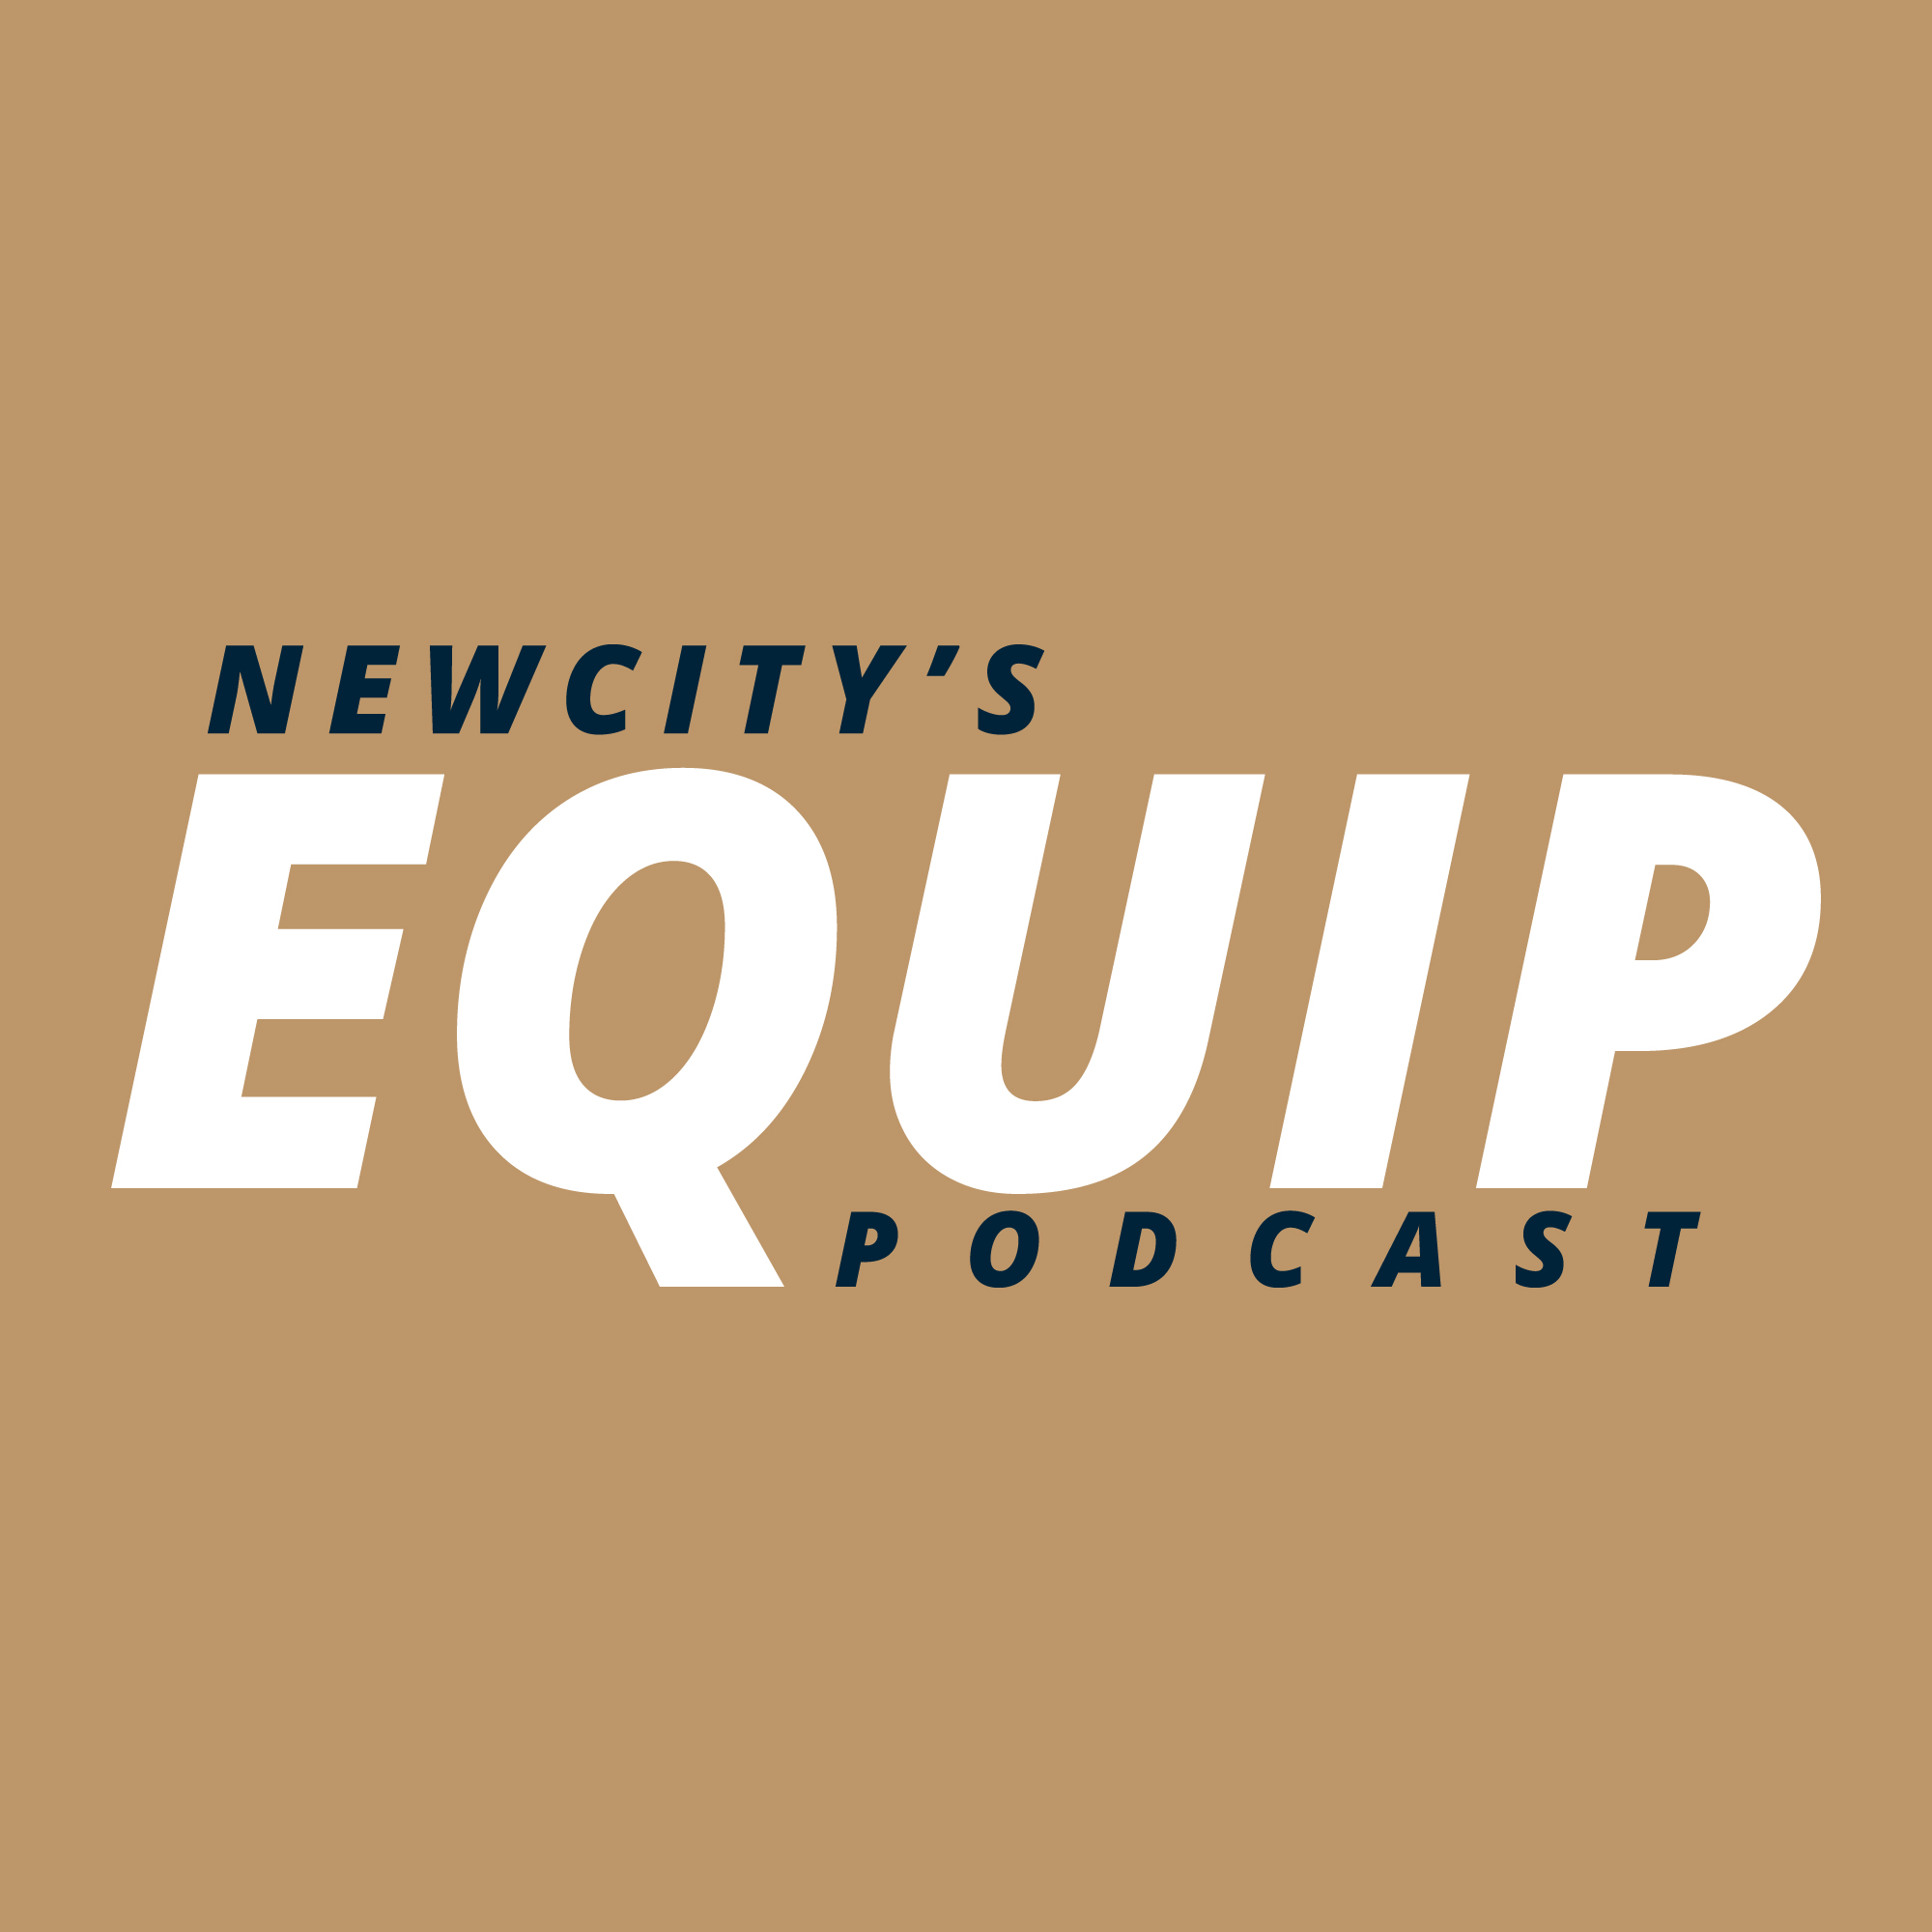 Equip Podcast Square.jpg